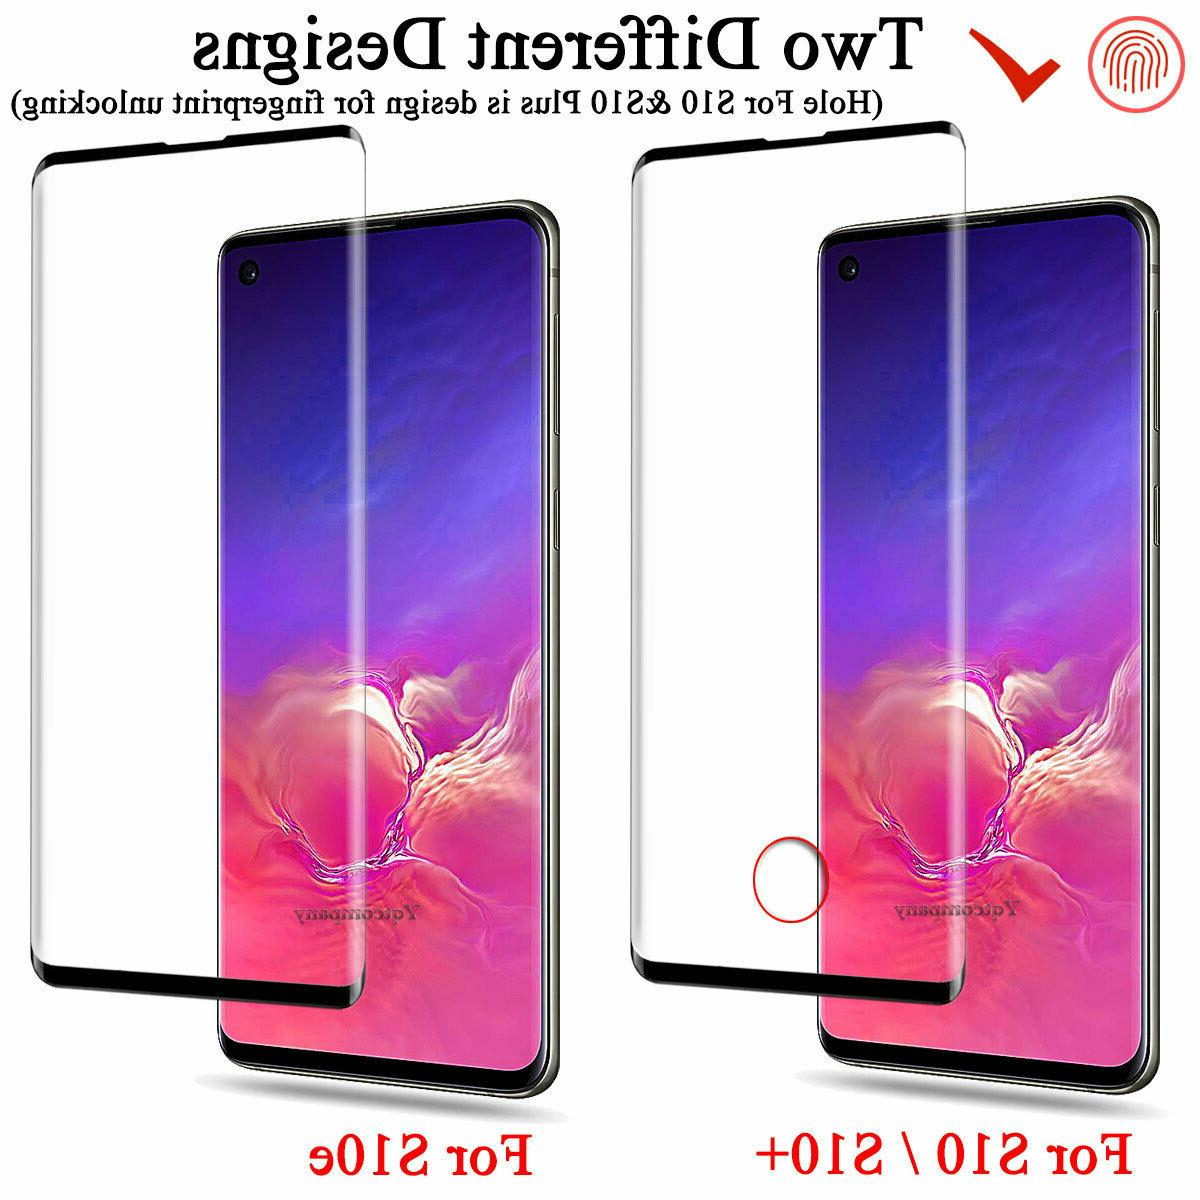 Samsung 10+/S10e Glass Screen